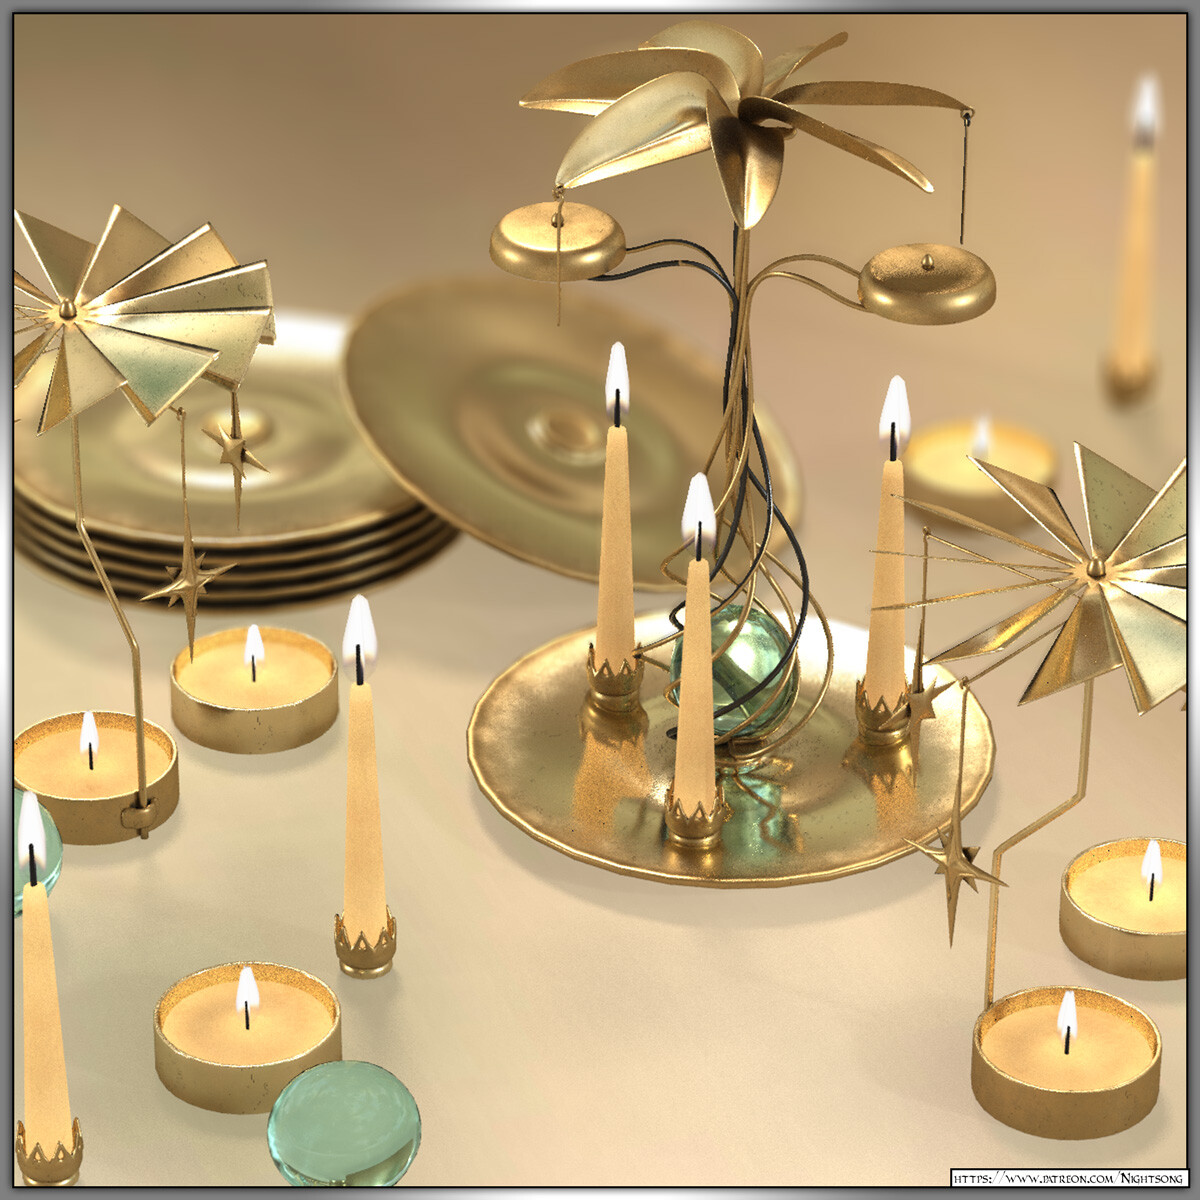 3D Candle Mobiles: Patreon 3D Model Archive